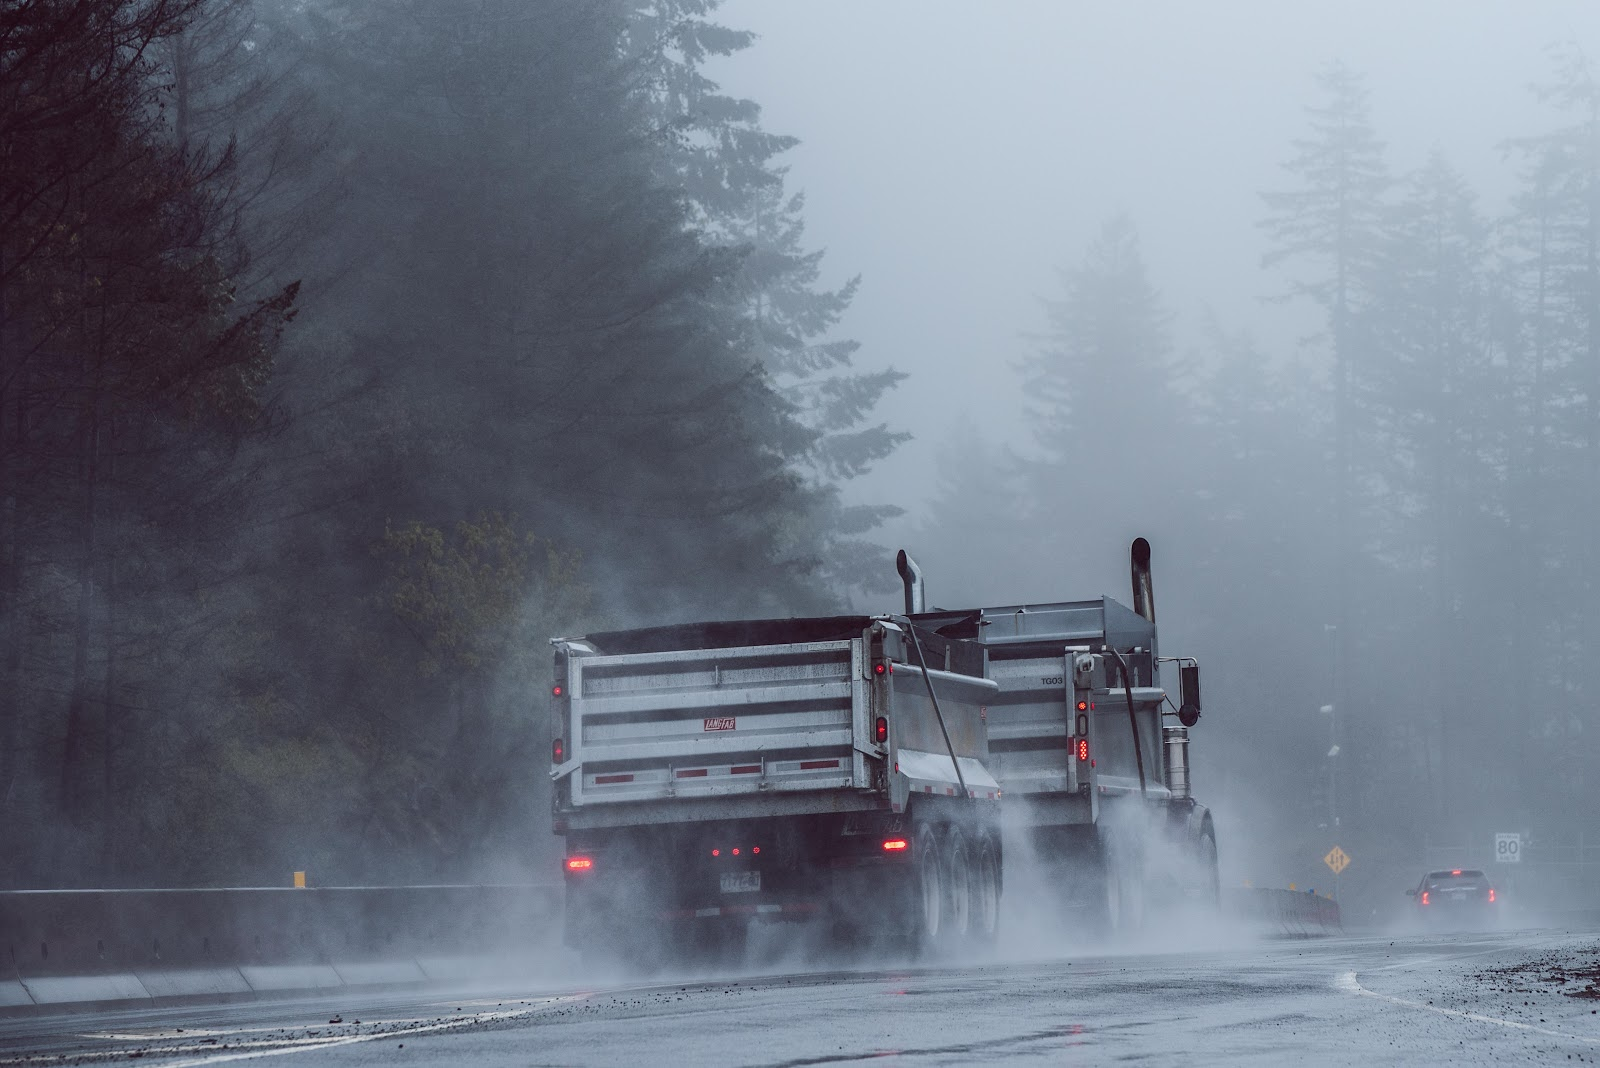 Truck on a foggy road